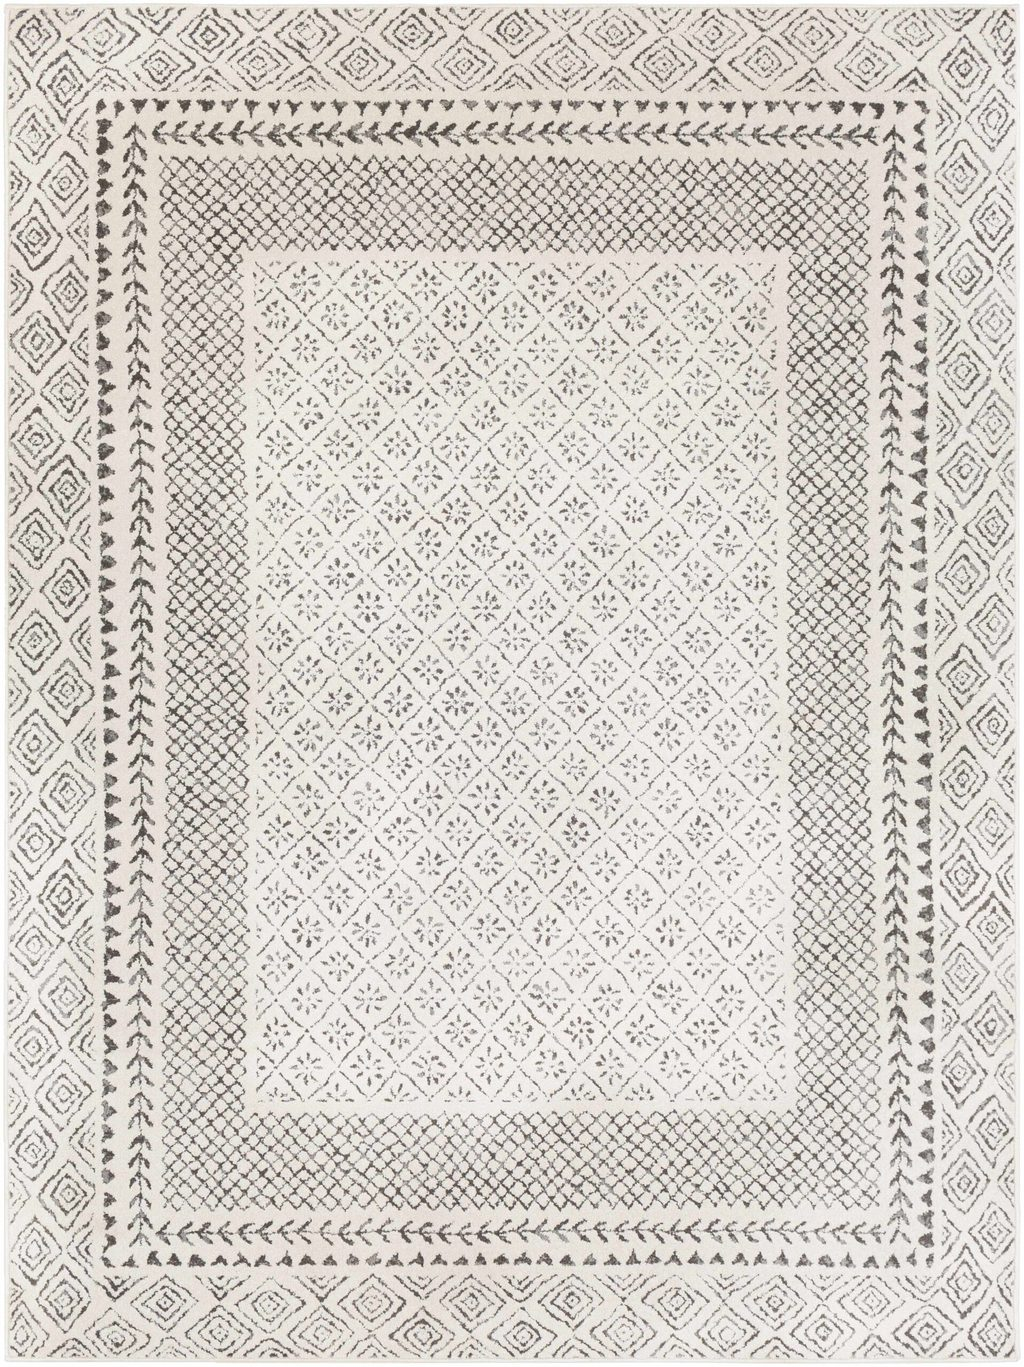 Grey and White Geo Pattern Rug Burdette from Boutique Rugs